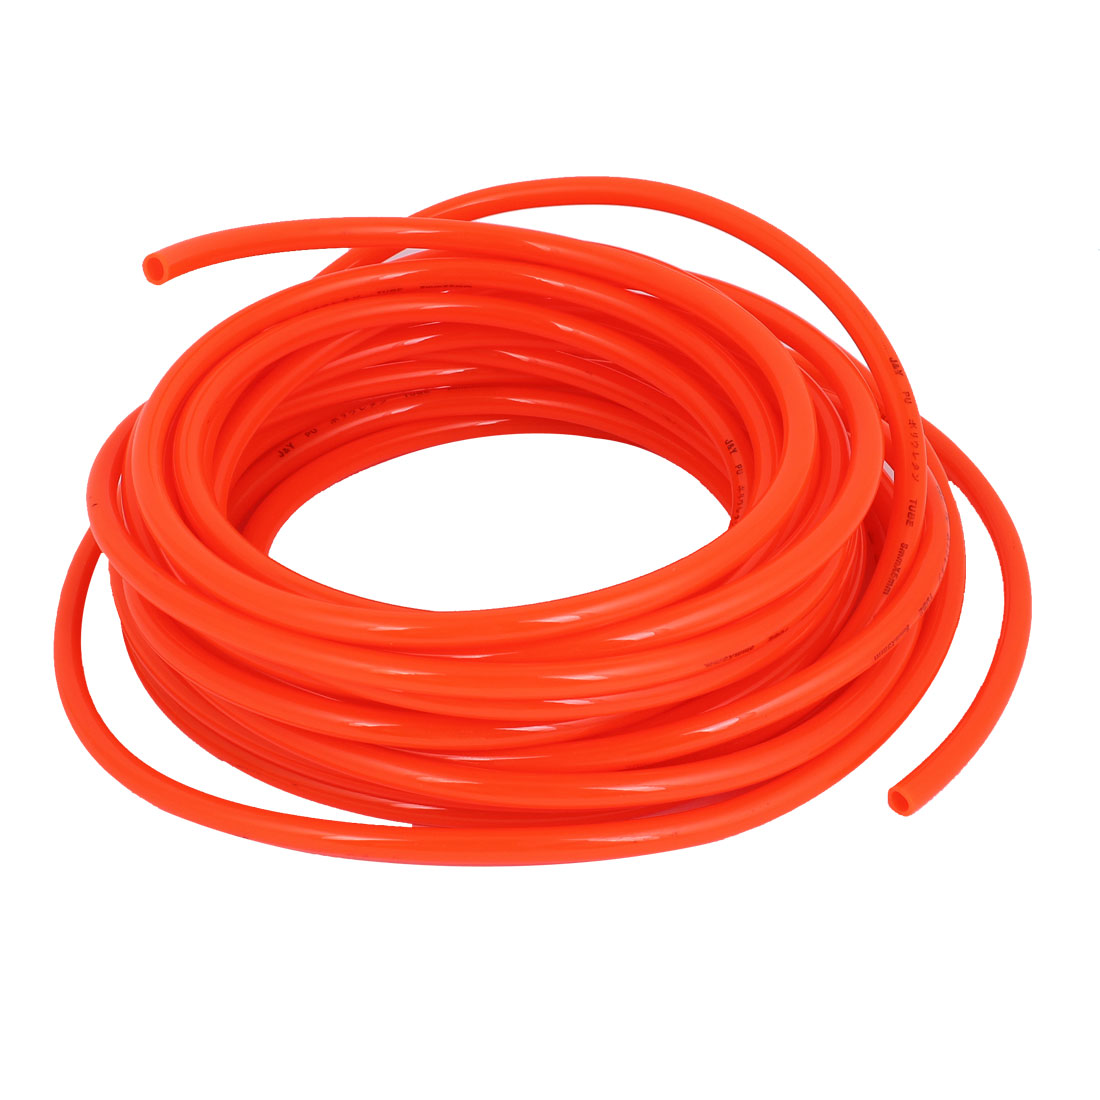 PU Polyurethane Flexible Air Tubing Pneumatic Pipe Tube Hose 8x5mm 12M